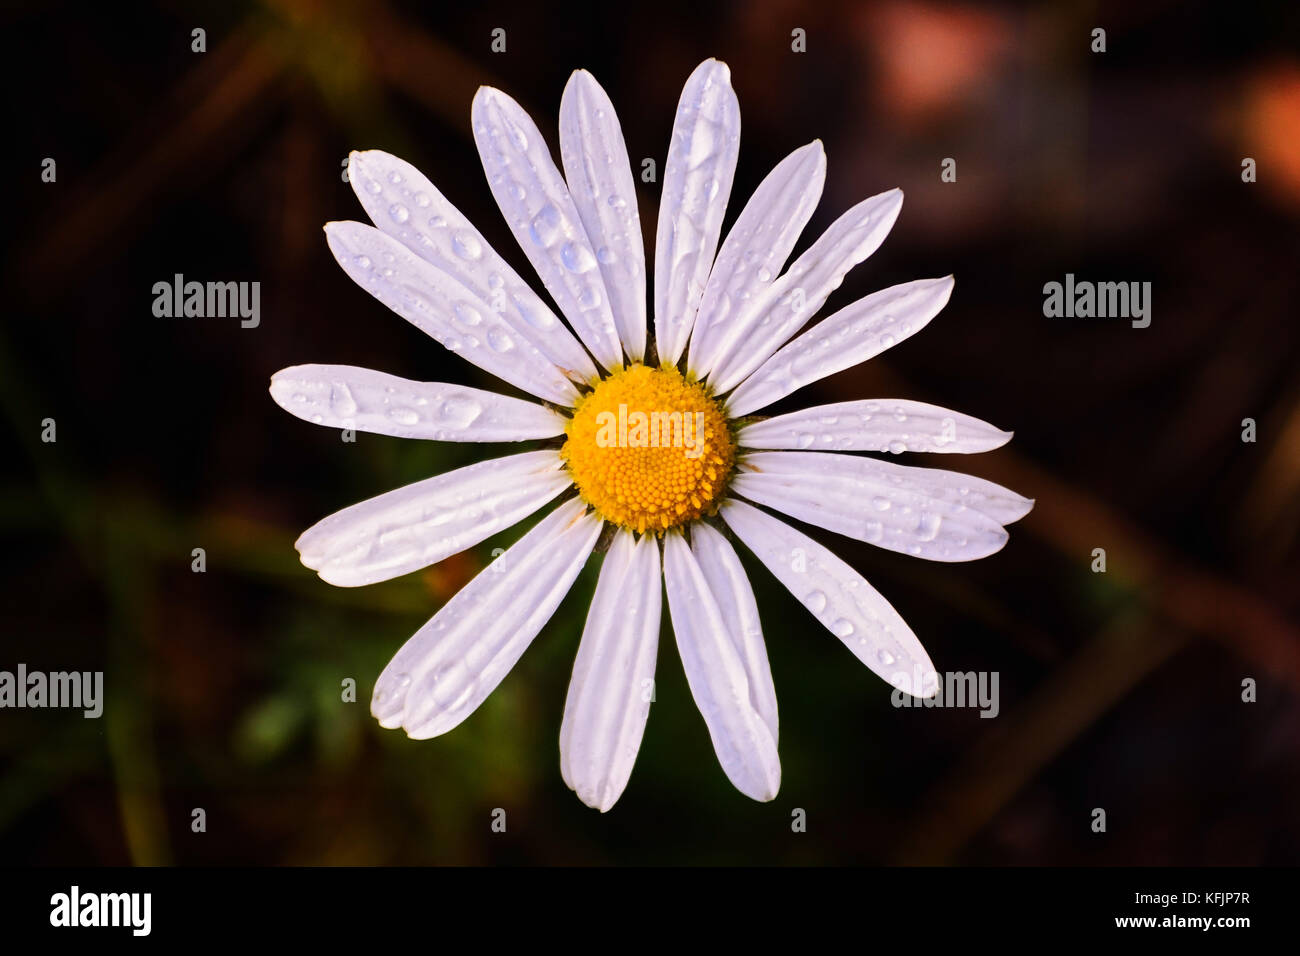 Head Of Daisy Flower With White Petals And Yellow Center On Dark